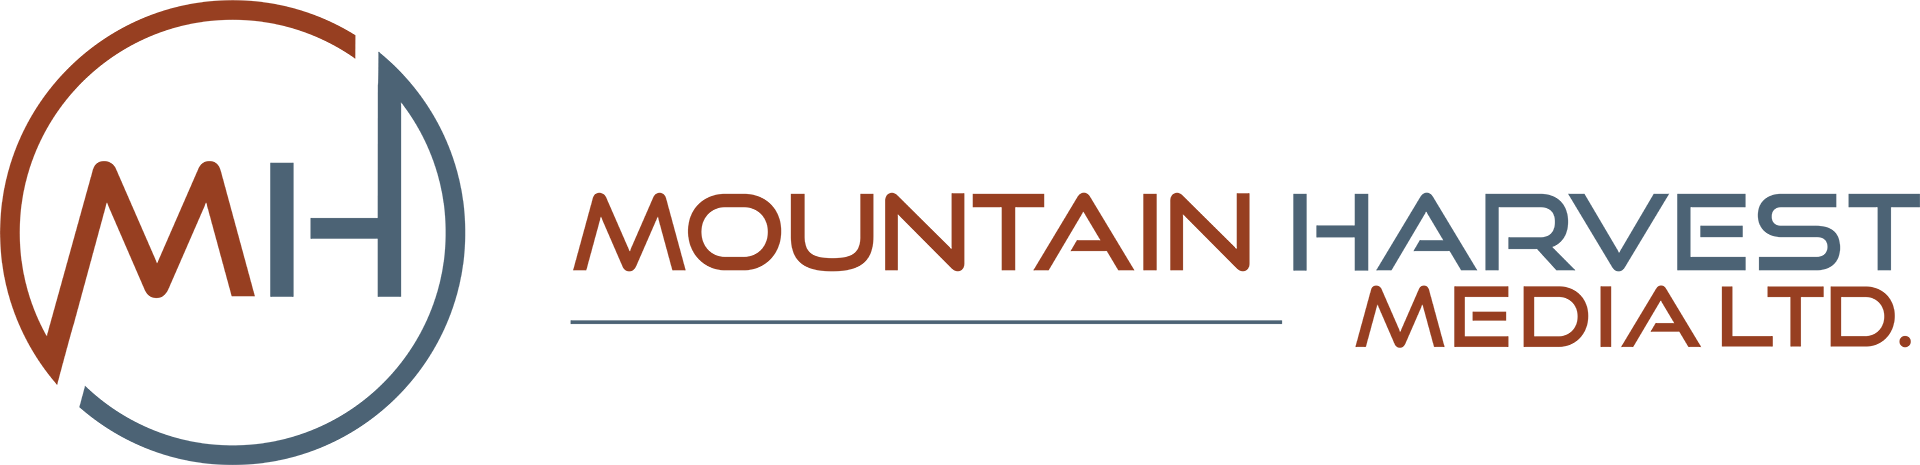 Mountain Harvest Media LTD.